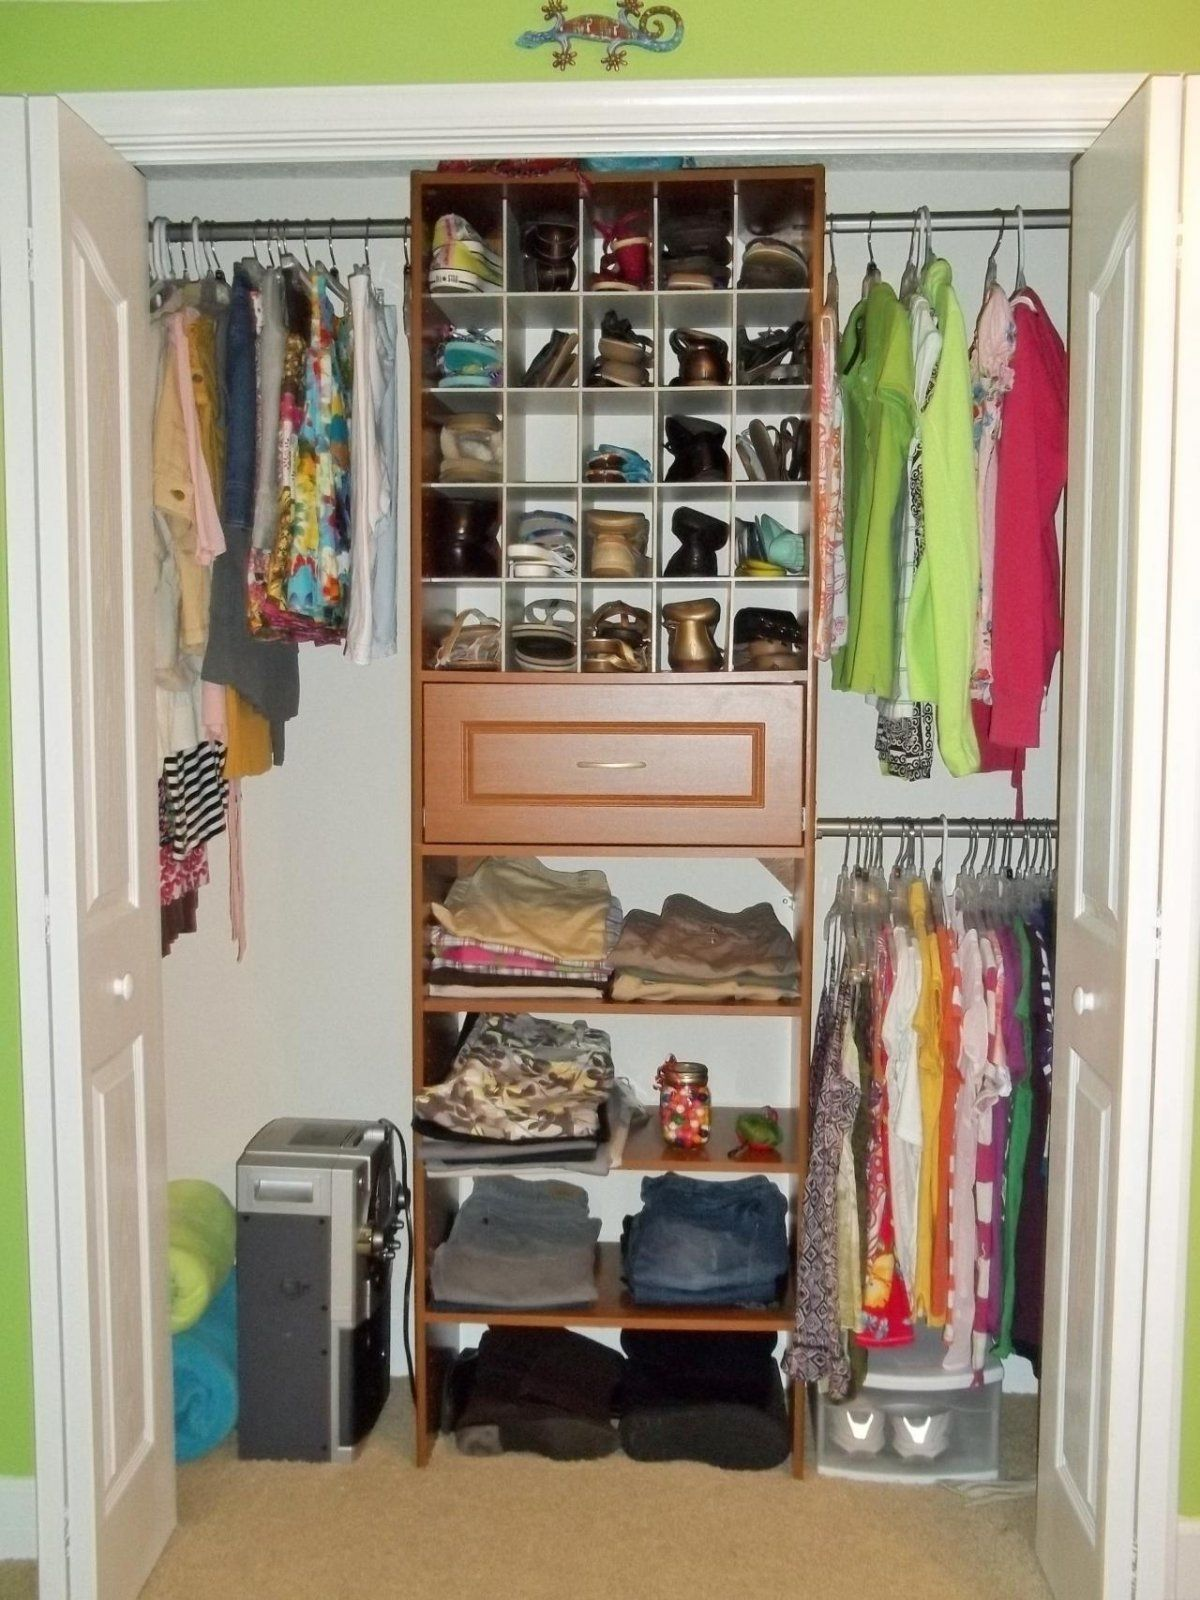 Diy Small Bedroom Closet Ideas Bdeaff For Your Hallway With How Organize Int Bedroom Organization Closet Closet Small Bedroom Small Closet Organization Bedroom